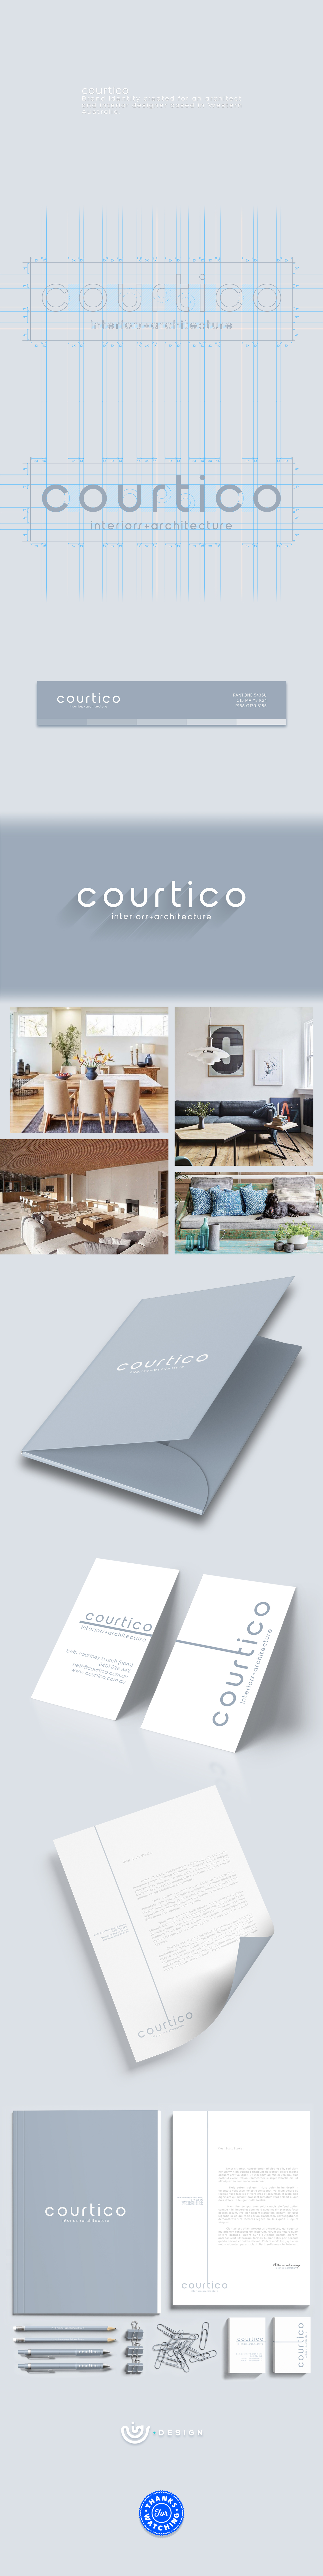 Client Work Brand Identity created for an architect and interior